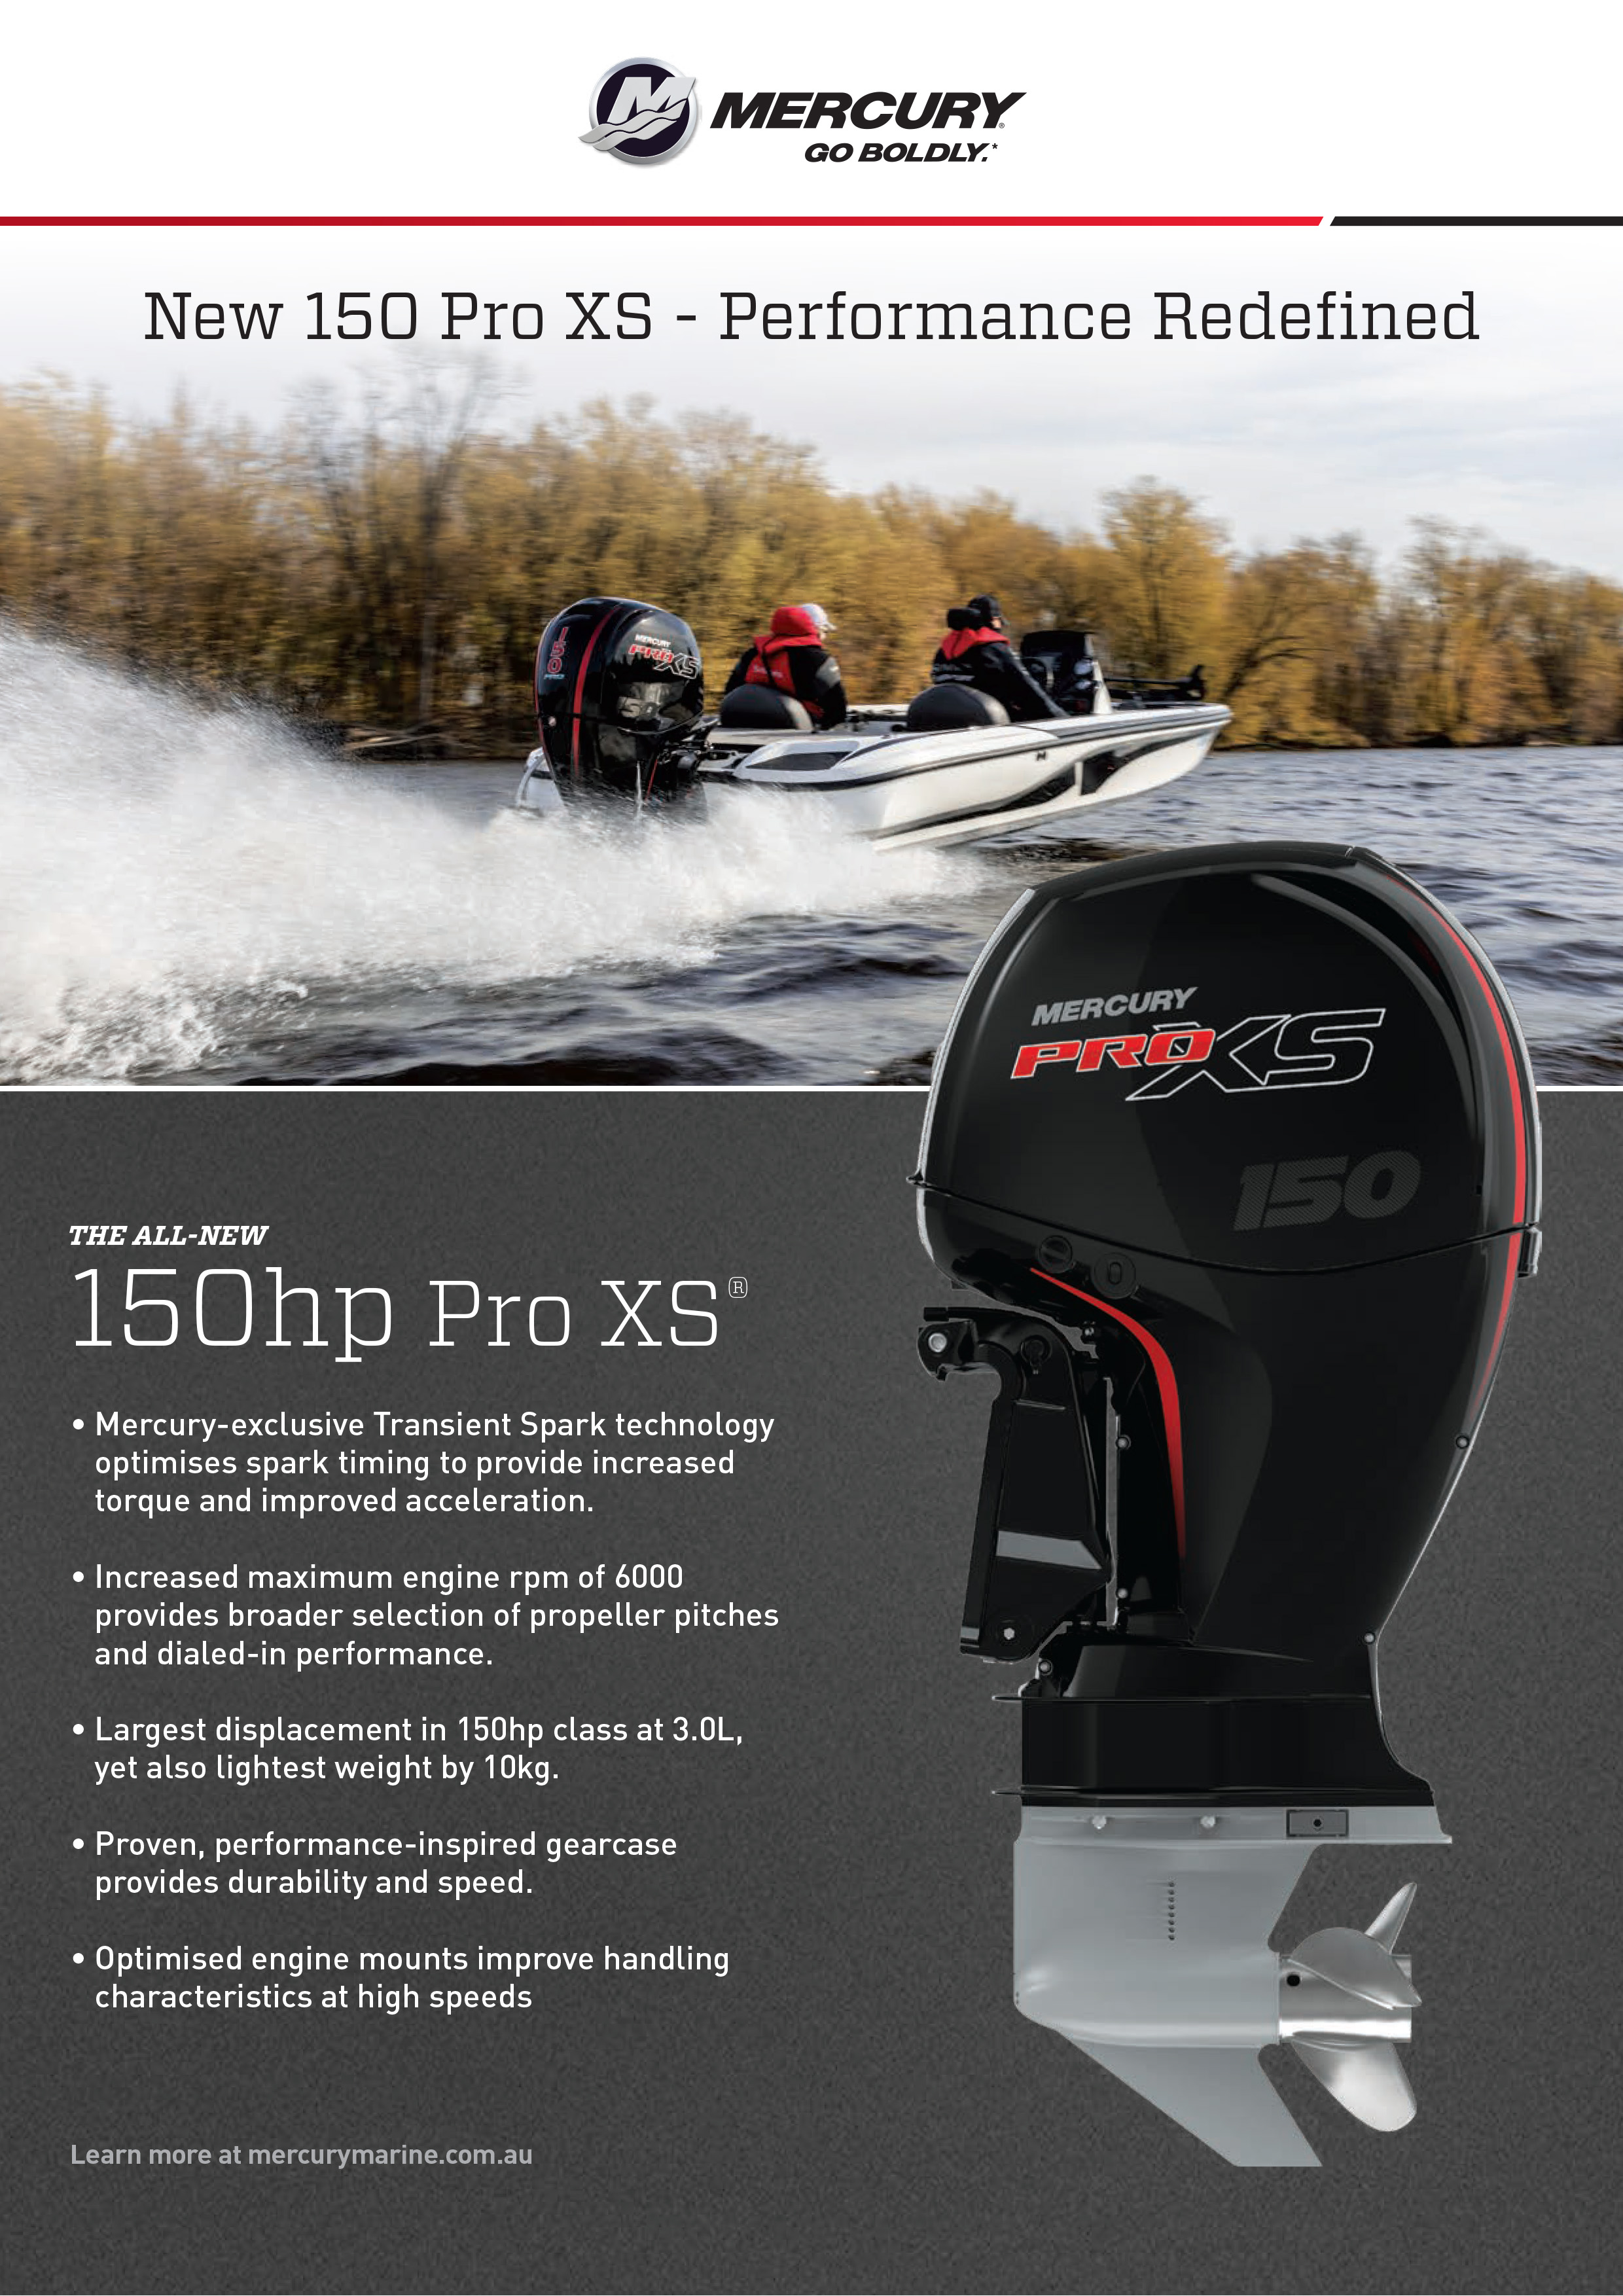 Building on the success of the mercury 115 pro xs fourstroke mercury marine has created its new 150 pro xs fourstroke an engine which sets a new standard